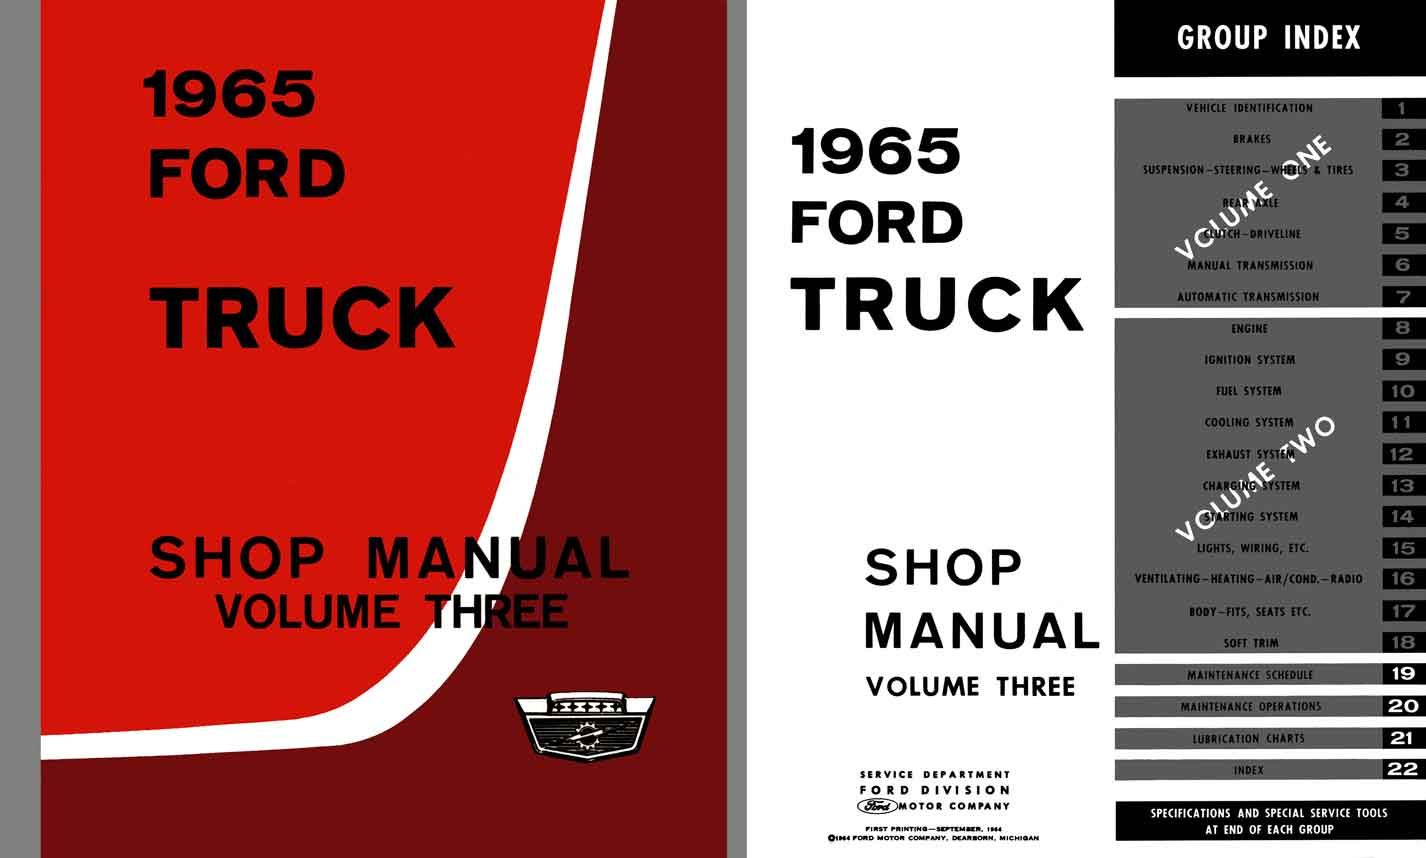 Ford Truck 1965 - Shop Manual Volume Three